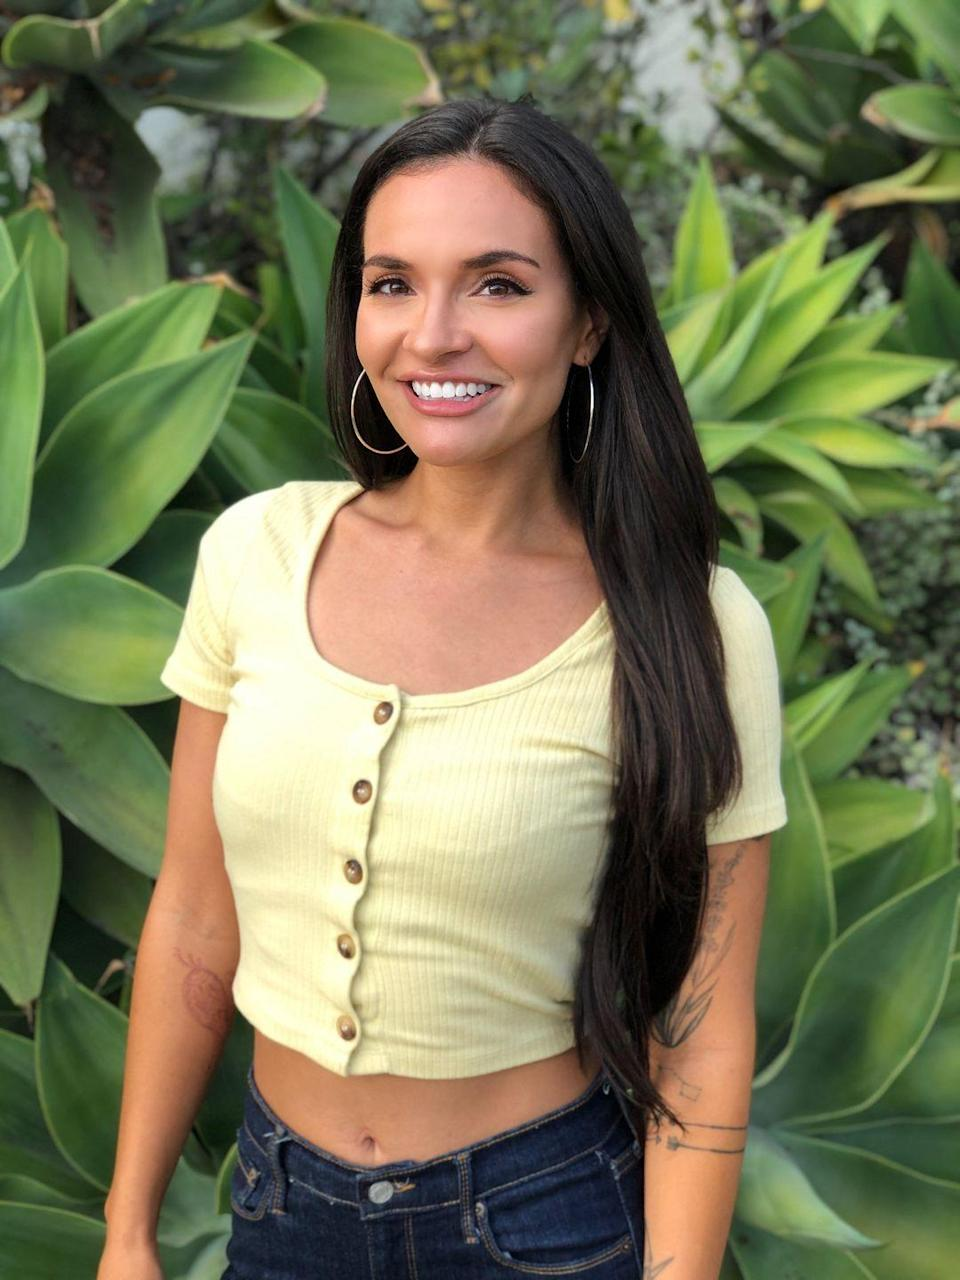 """<p>Carolyn describes herself as """"Paisa Colombianita,"""" a.k.a. a rural Colombian gal. She's lived in Boston and now resides in Los Angeles. There, Carolyn is failing as a plant mom but fares better as a dog mom. She enjoys the beach, natch, and works as a journalist.</p><p>Chris says she has a lot of relationship experience, since she's been engaged twice.</p><p><strong>Age: 30</strong></p><p><strong>Hometown: Newburyport, MA</strong></p><p><strong>I</strong><strong>n</strong><strong>stagram: @carolyn.vallejo</strong></p>"""